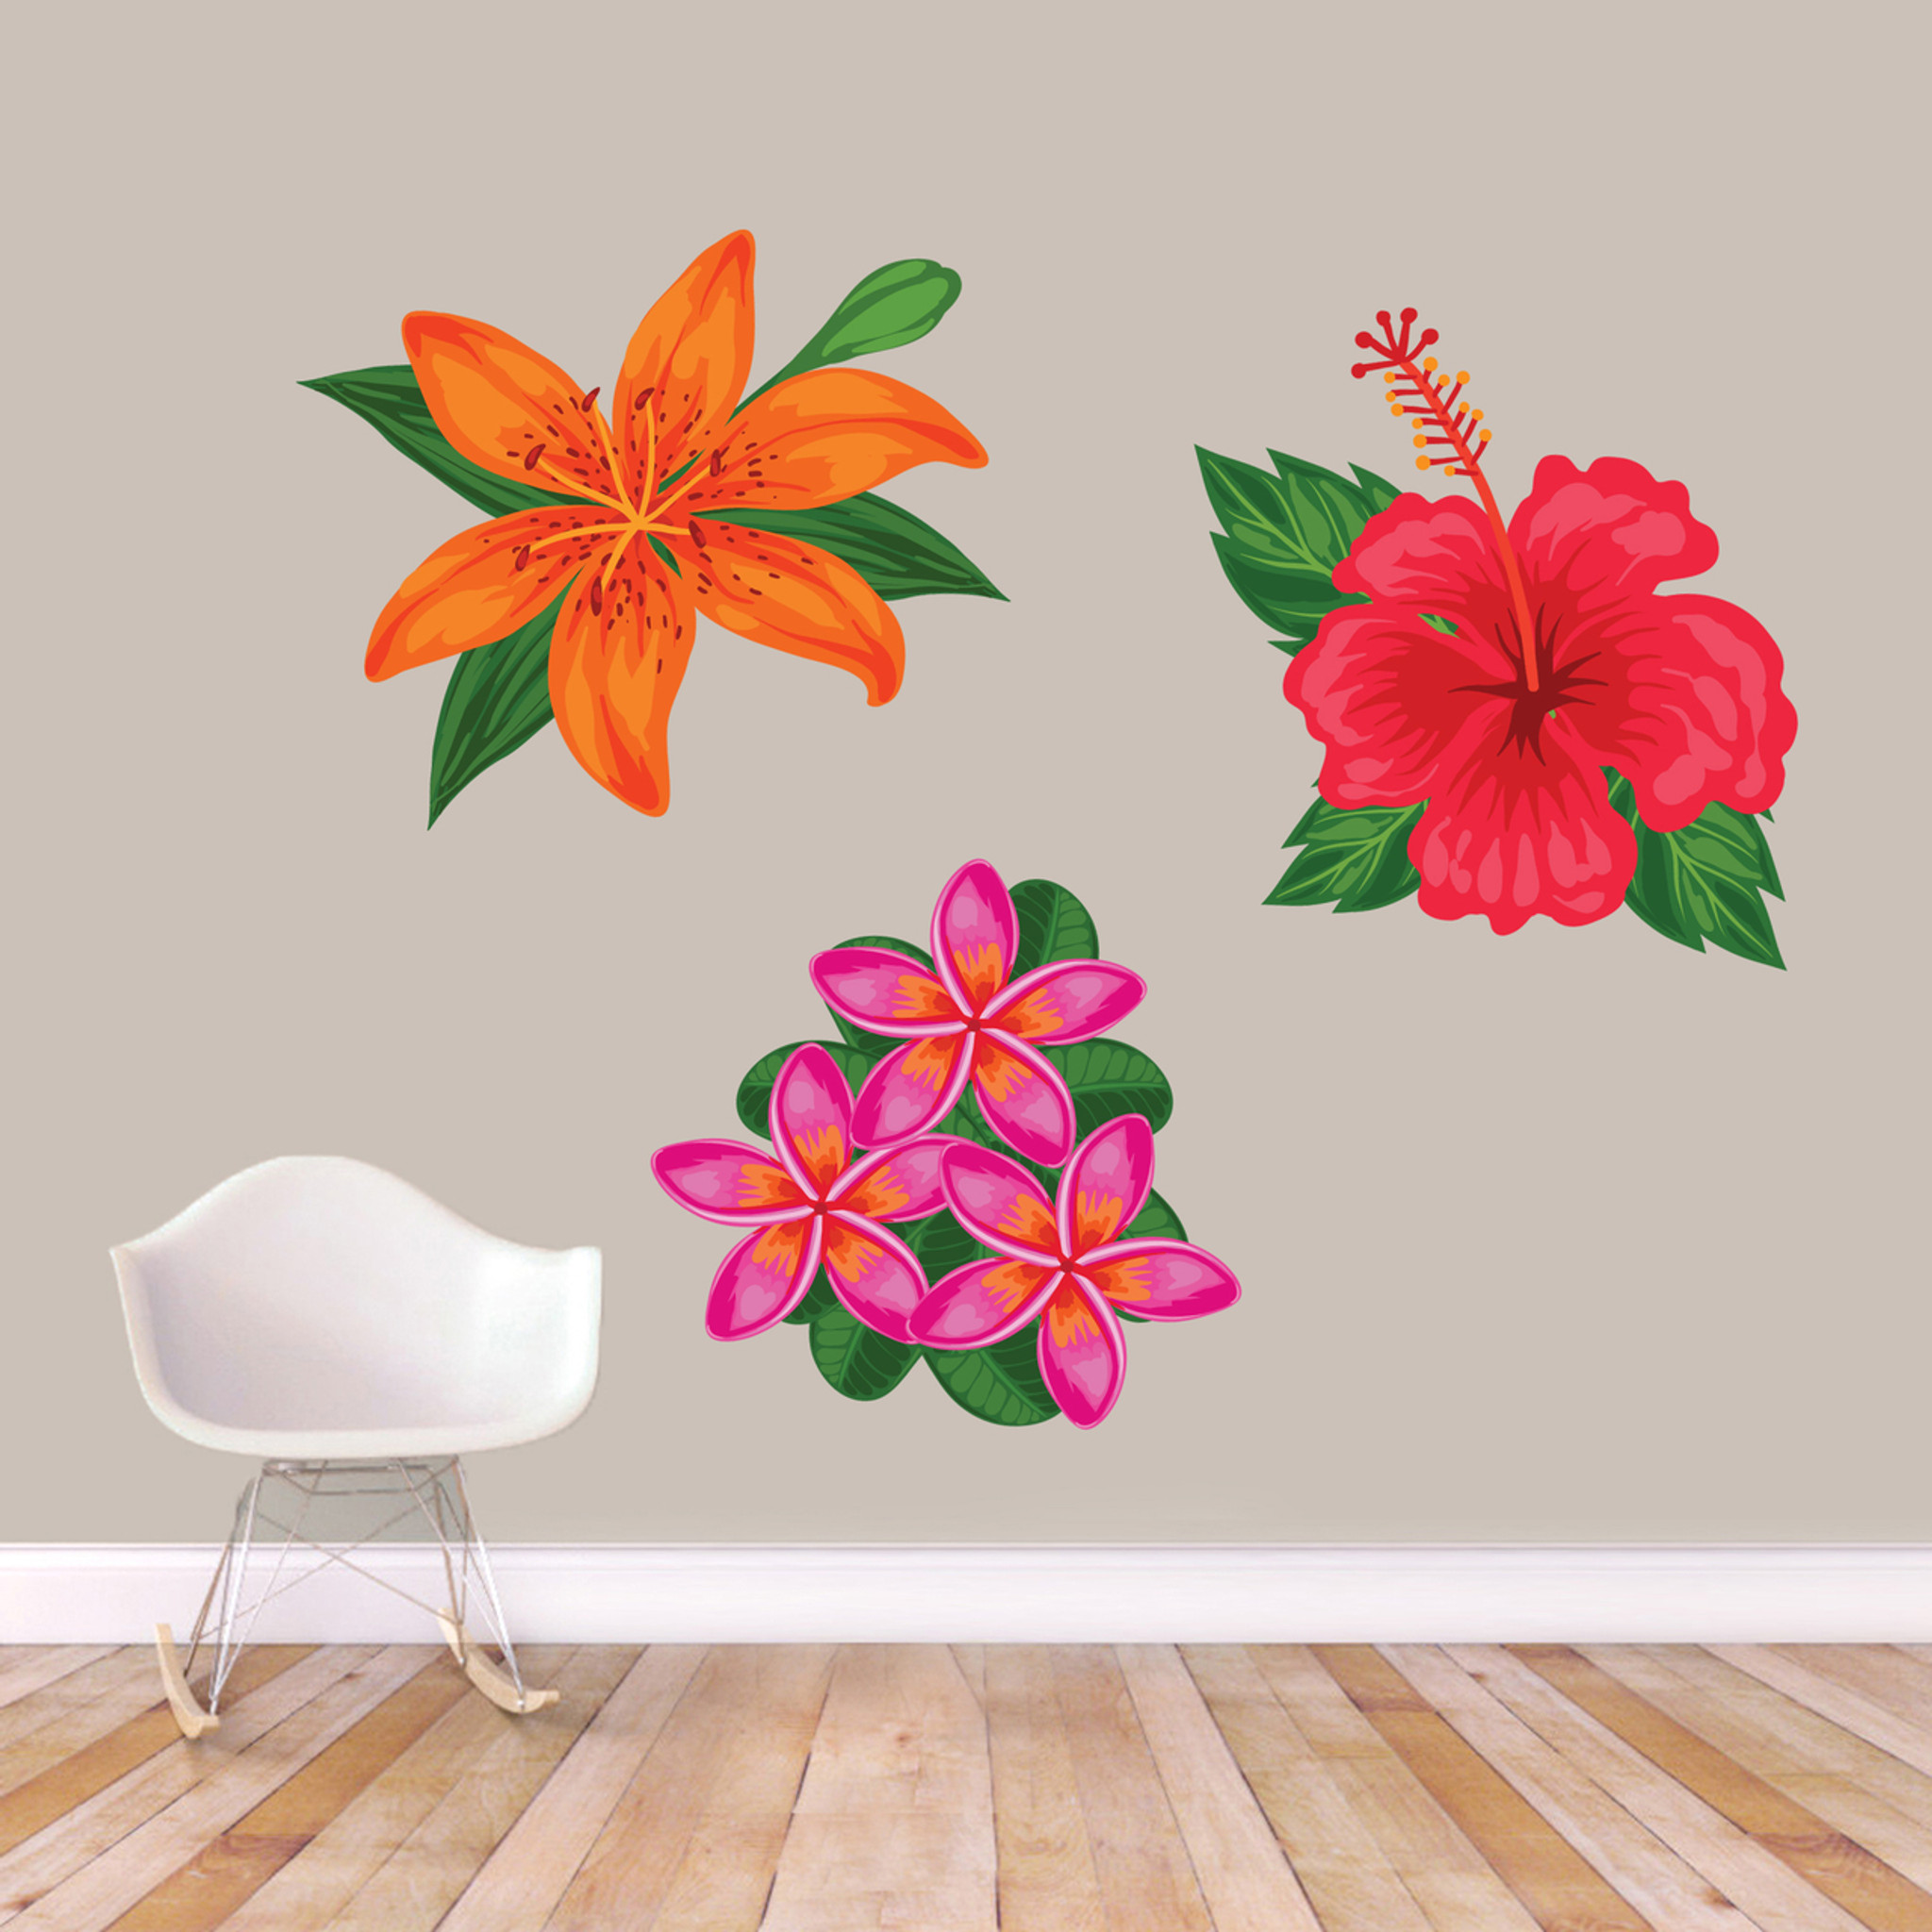 Impressive Bathroom Printed Tropical Flowers Wall Decals Large Sample Image Printed Tropical Flowers Wall Decal Set Ums Signatures Flower Wall Decals Uk Flower Wall Decals houzz-03 Flower Wall Decals